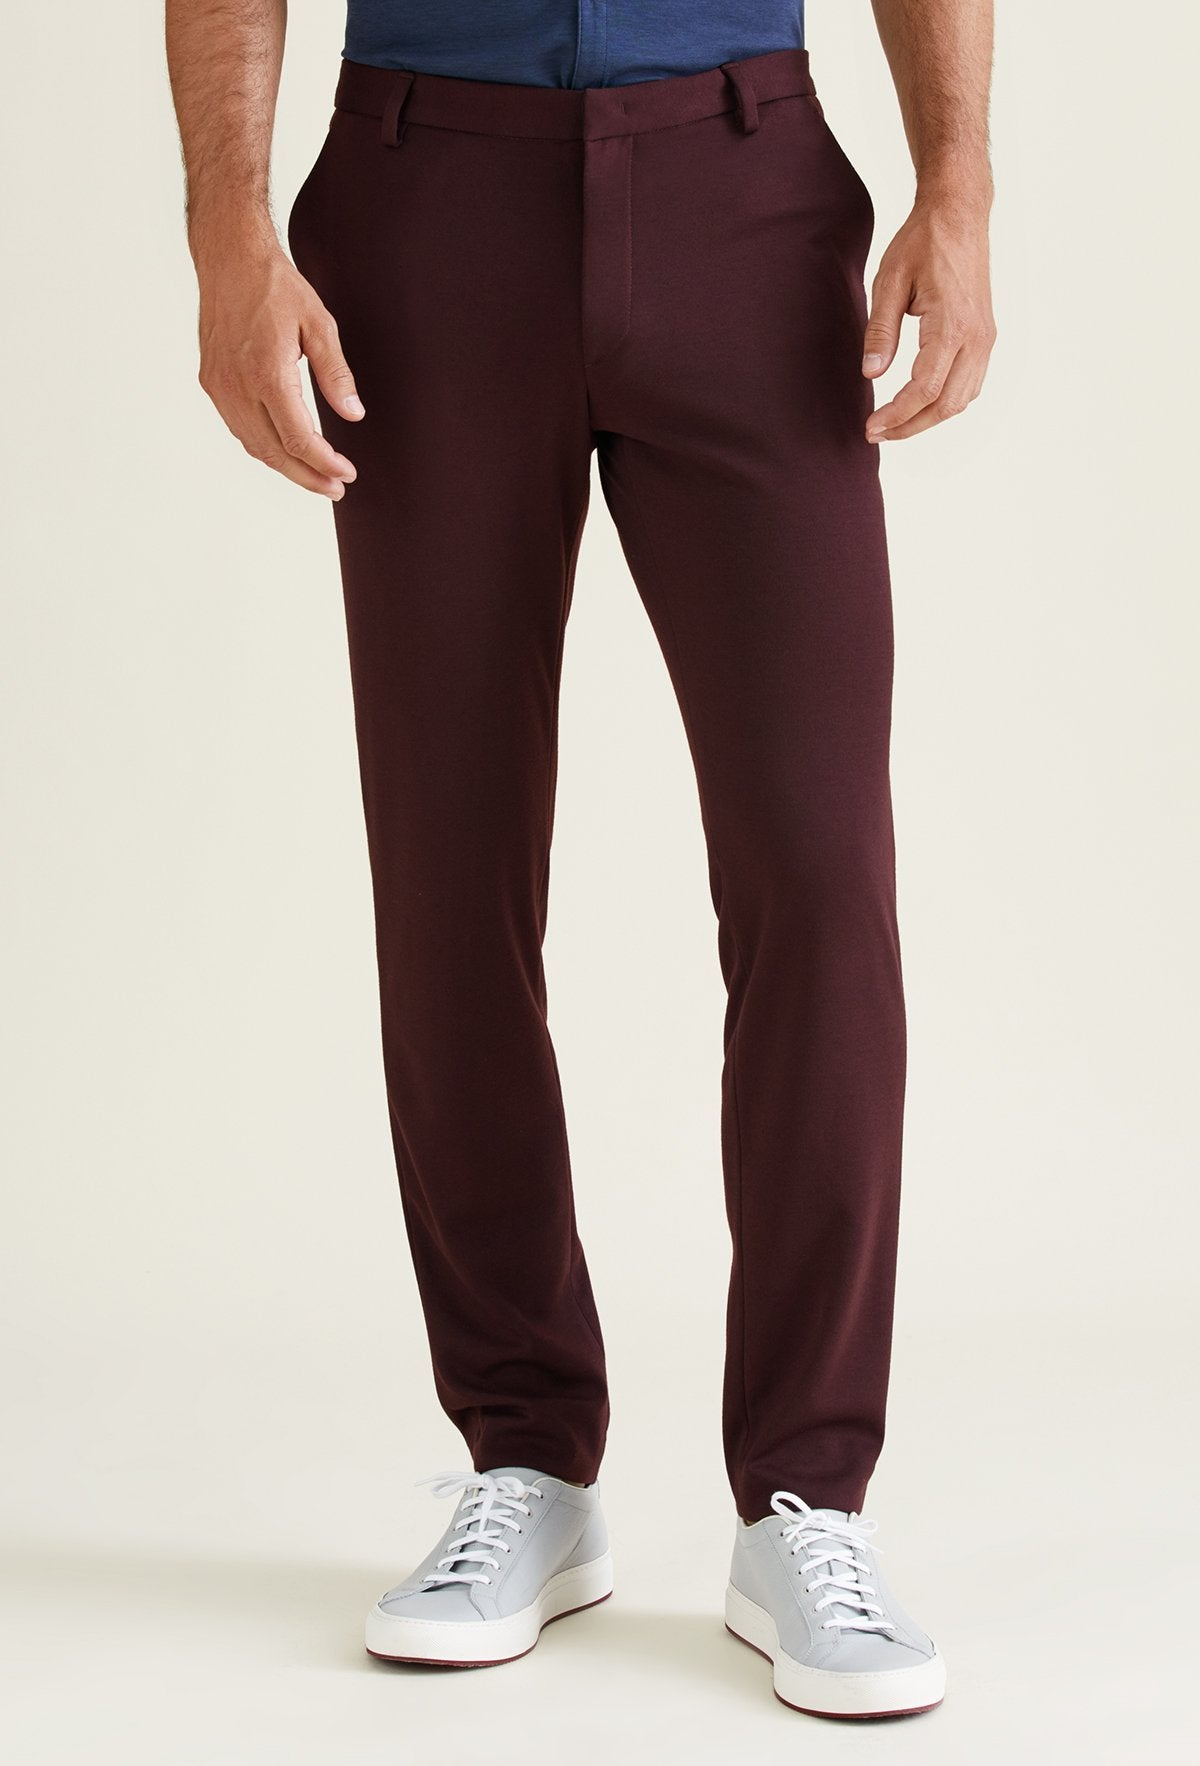 men's polyester knit pants in burgundy, charcoal gray, navy blue and black